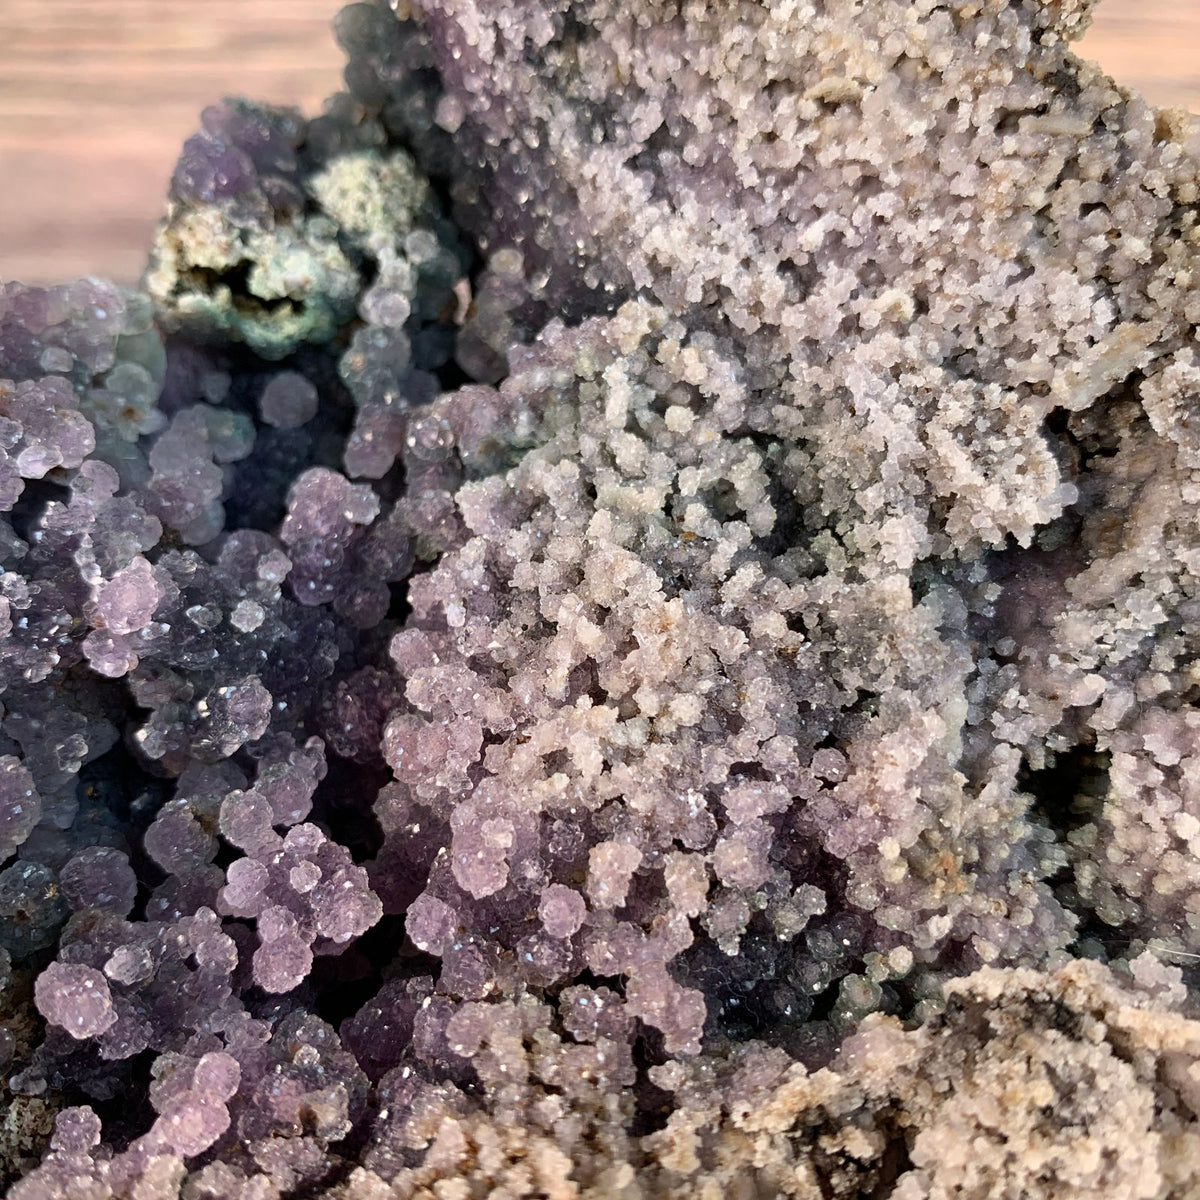 18cm 1.76kg Grape Agate (Botryoidal Chalcedony) from Manakarra, Sulawesi, Indonesia